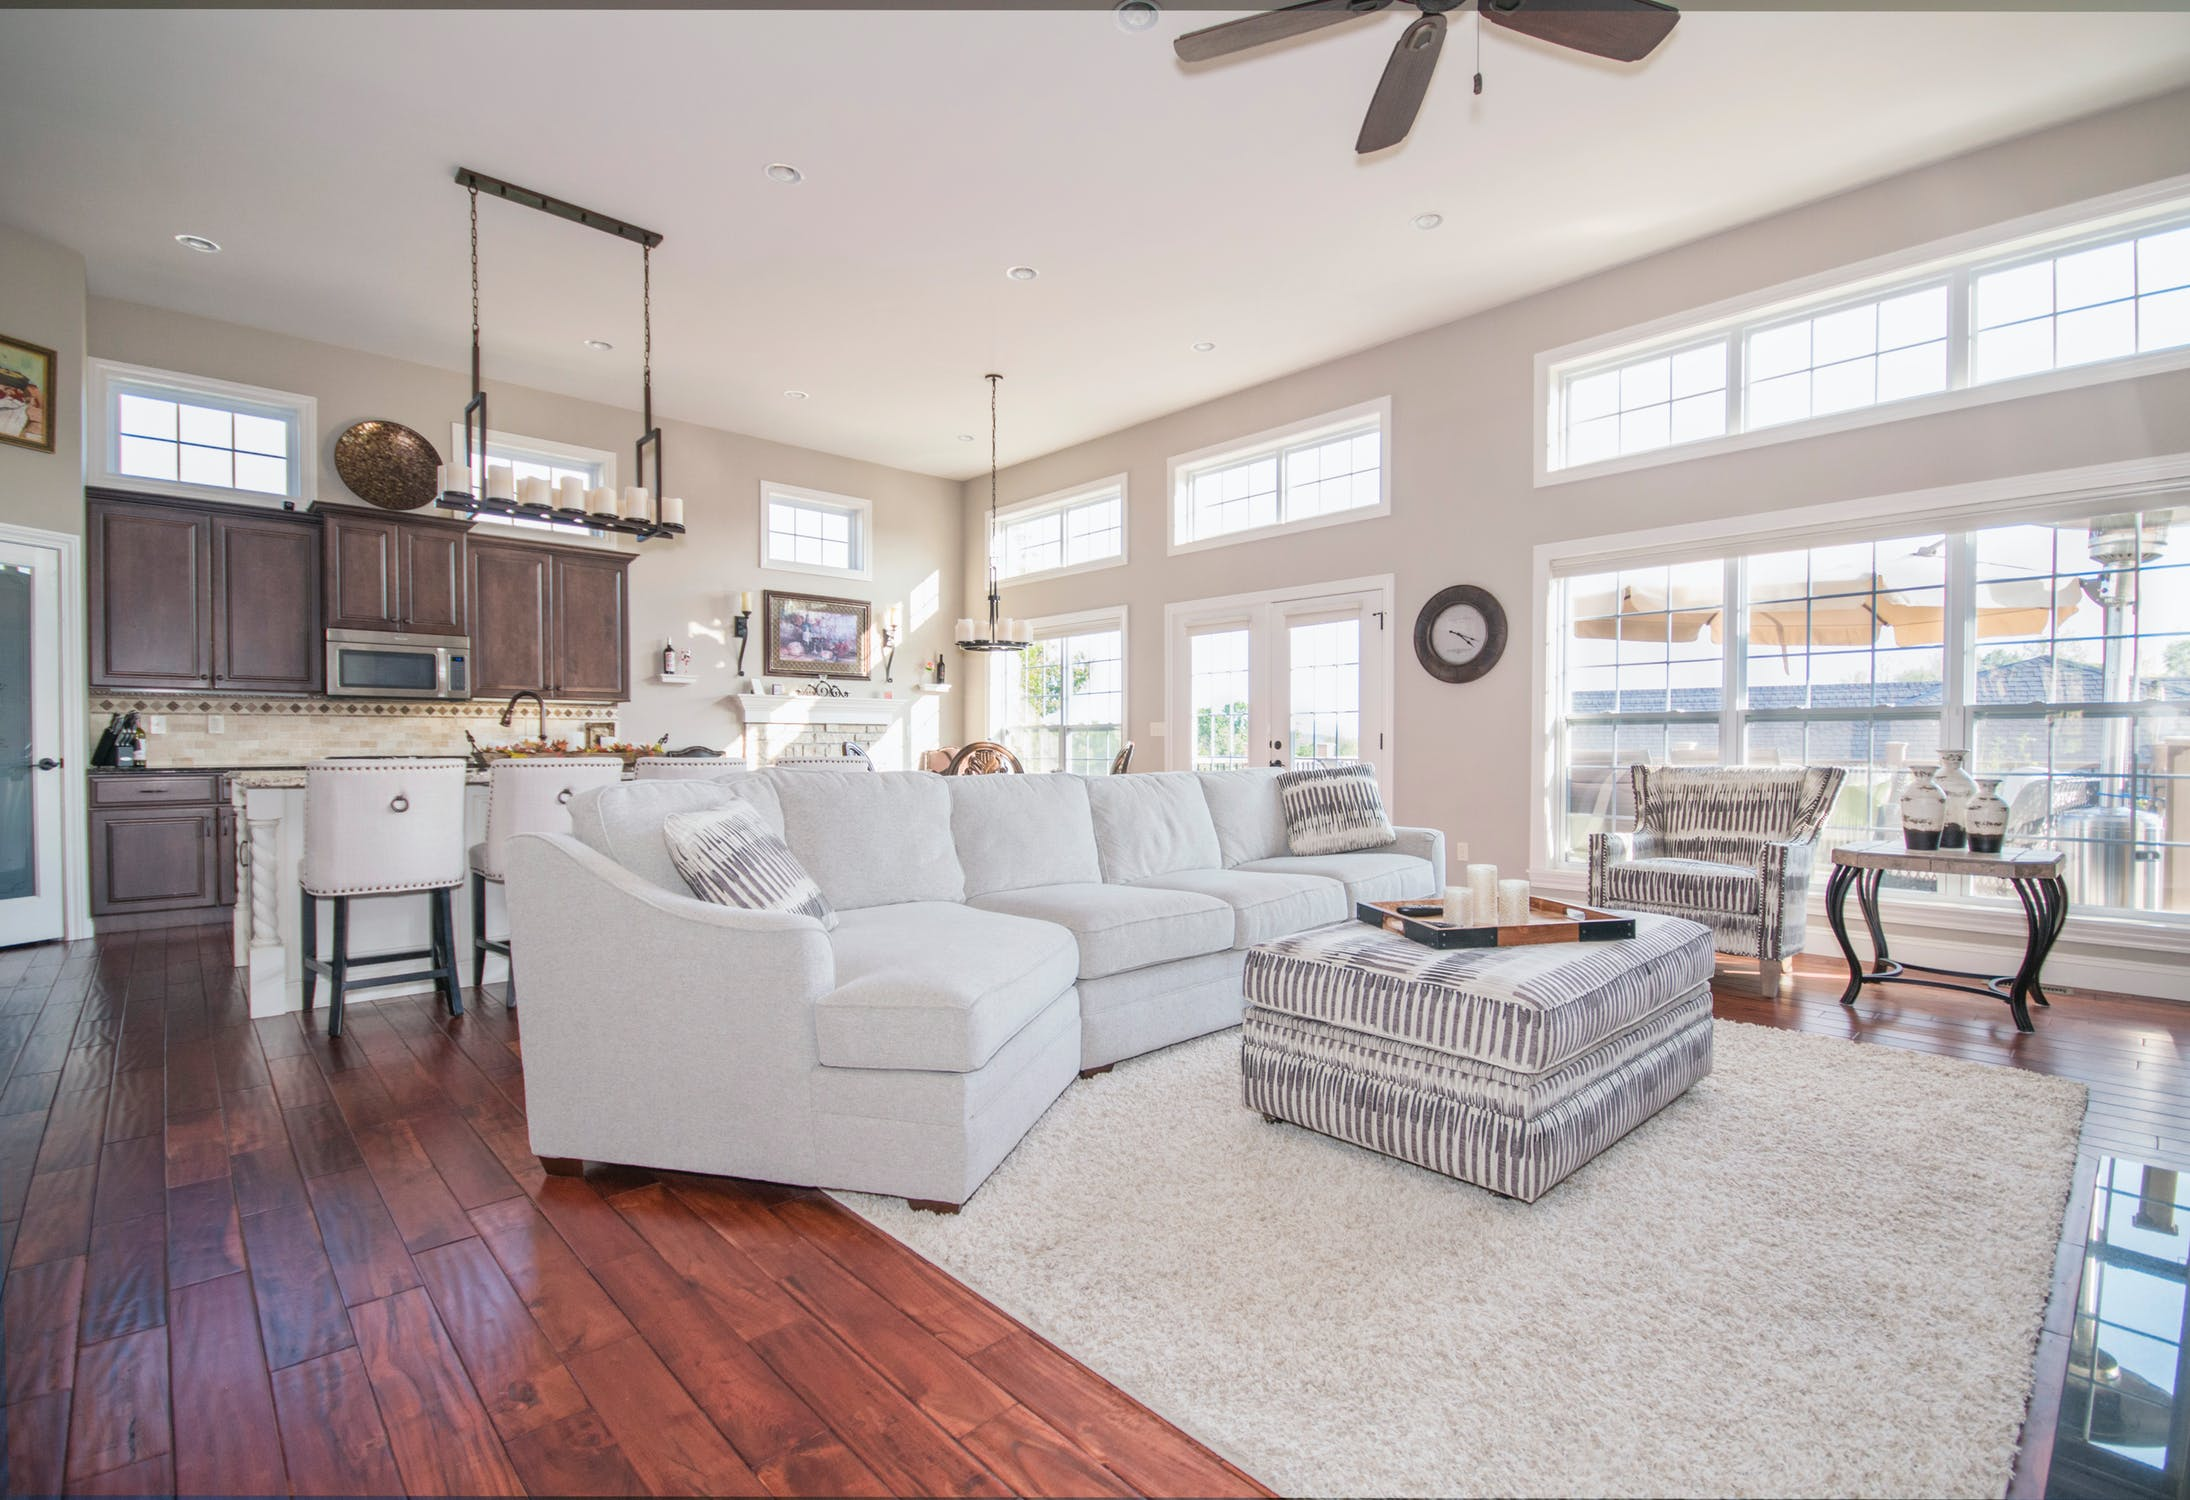 Image of an open-concept layout living room